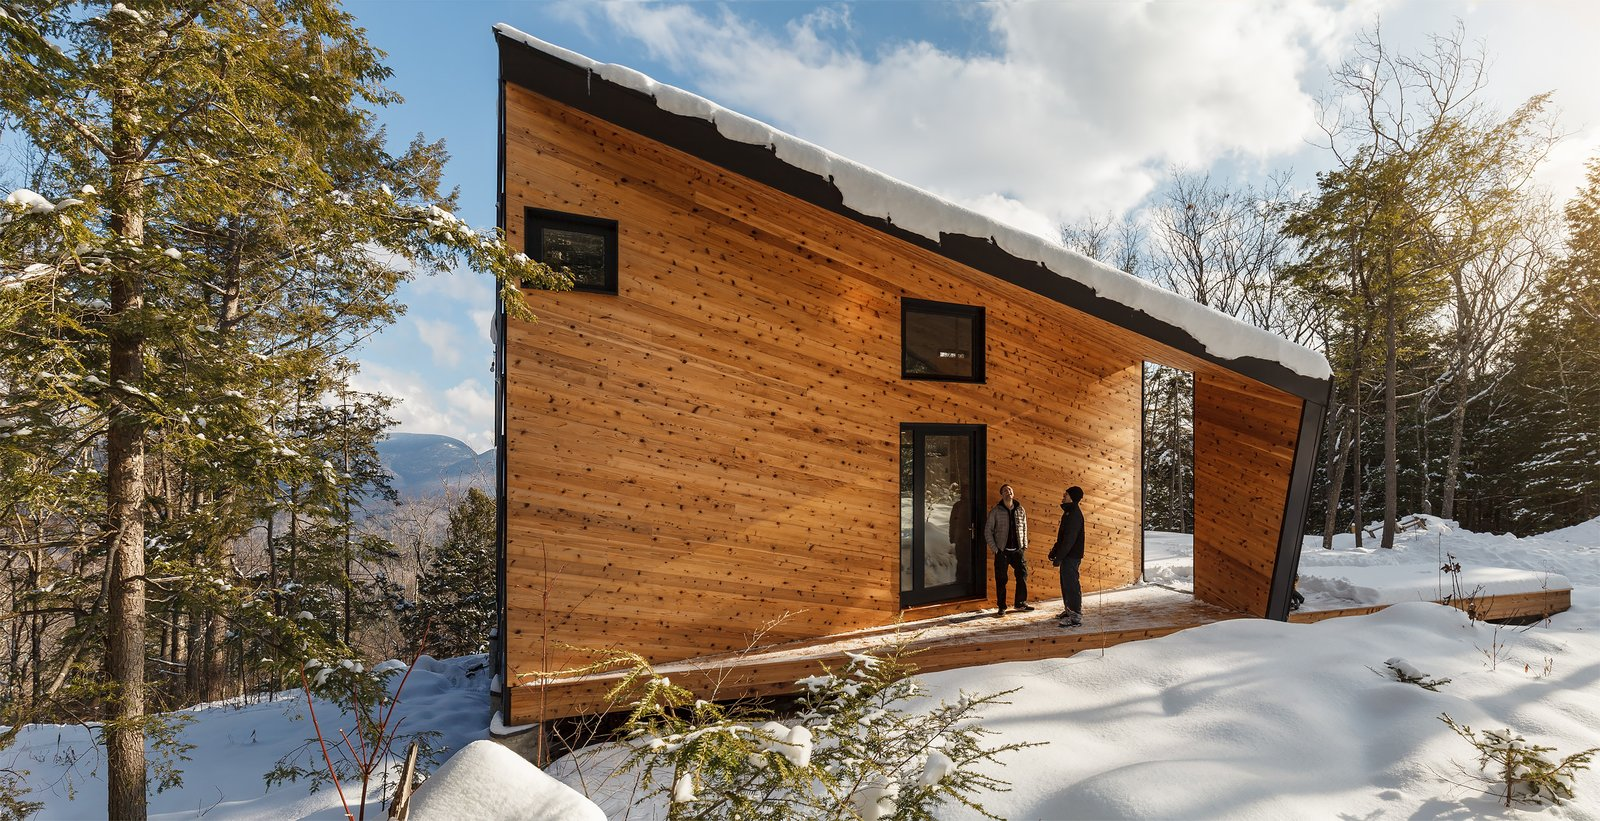 Exterior, Metal Siding Material, Wood Siding Material, Prefab Building Type, and Cabin Building Type  Photo 17 of 18 in A Prefab Cabin in New Hampshire Is a Magnificent Mountain Retreat